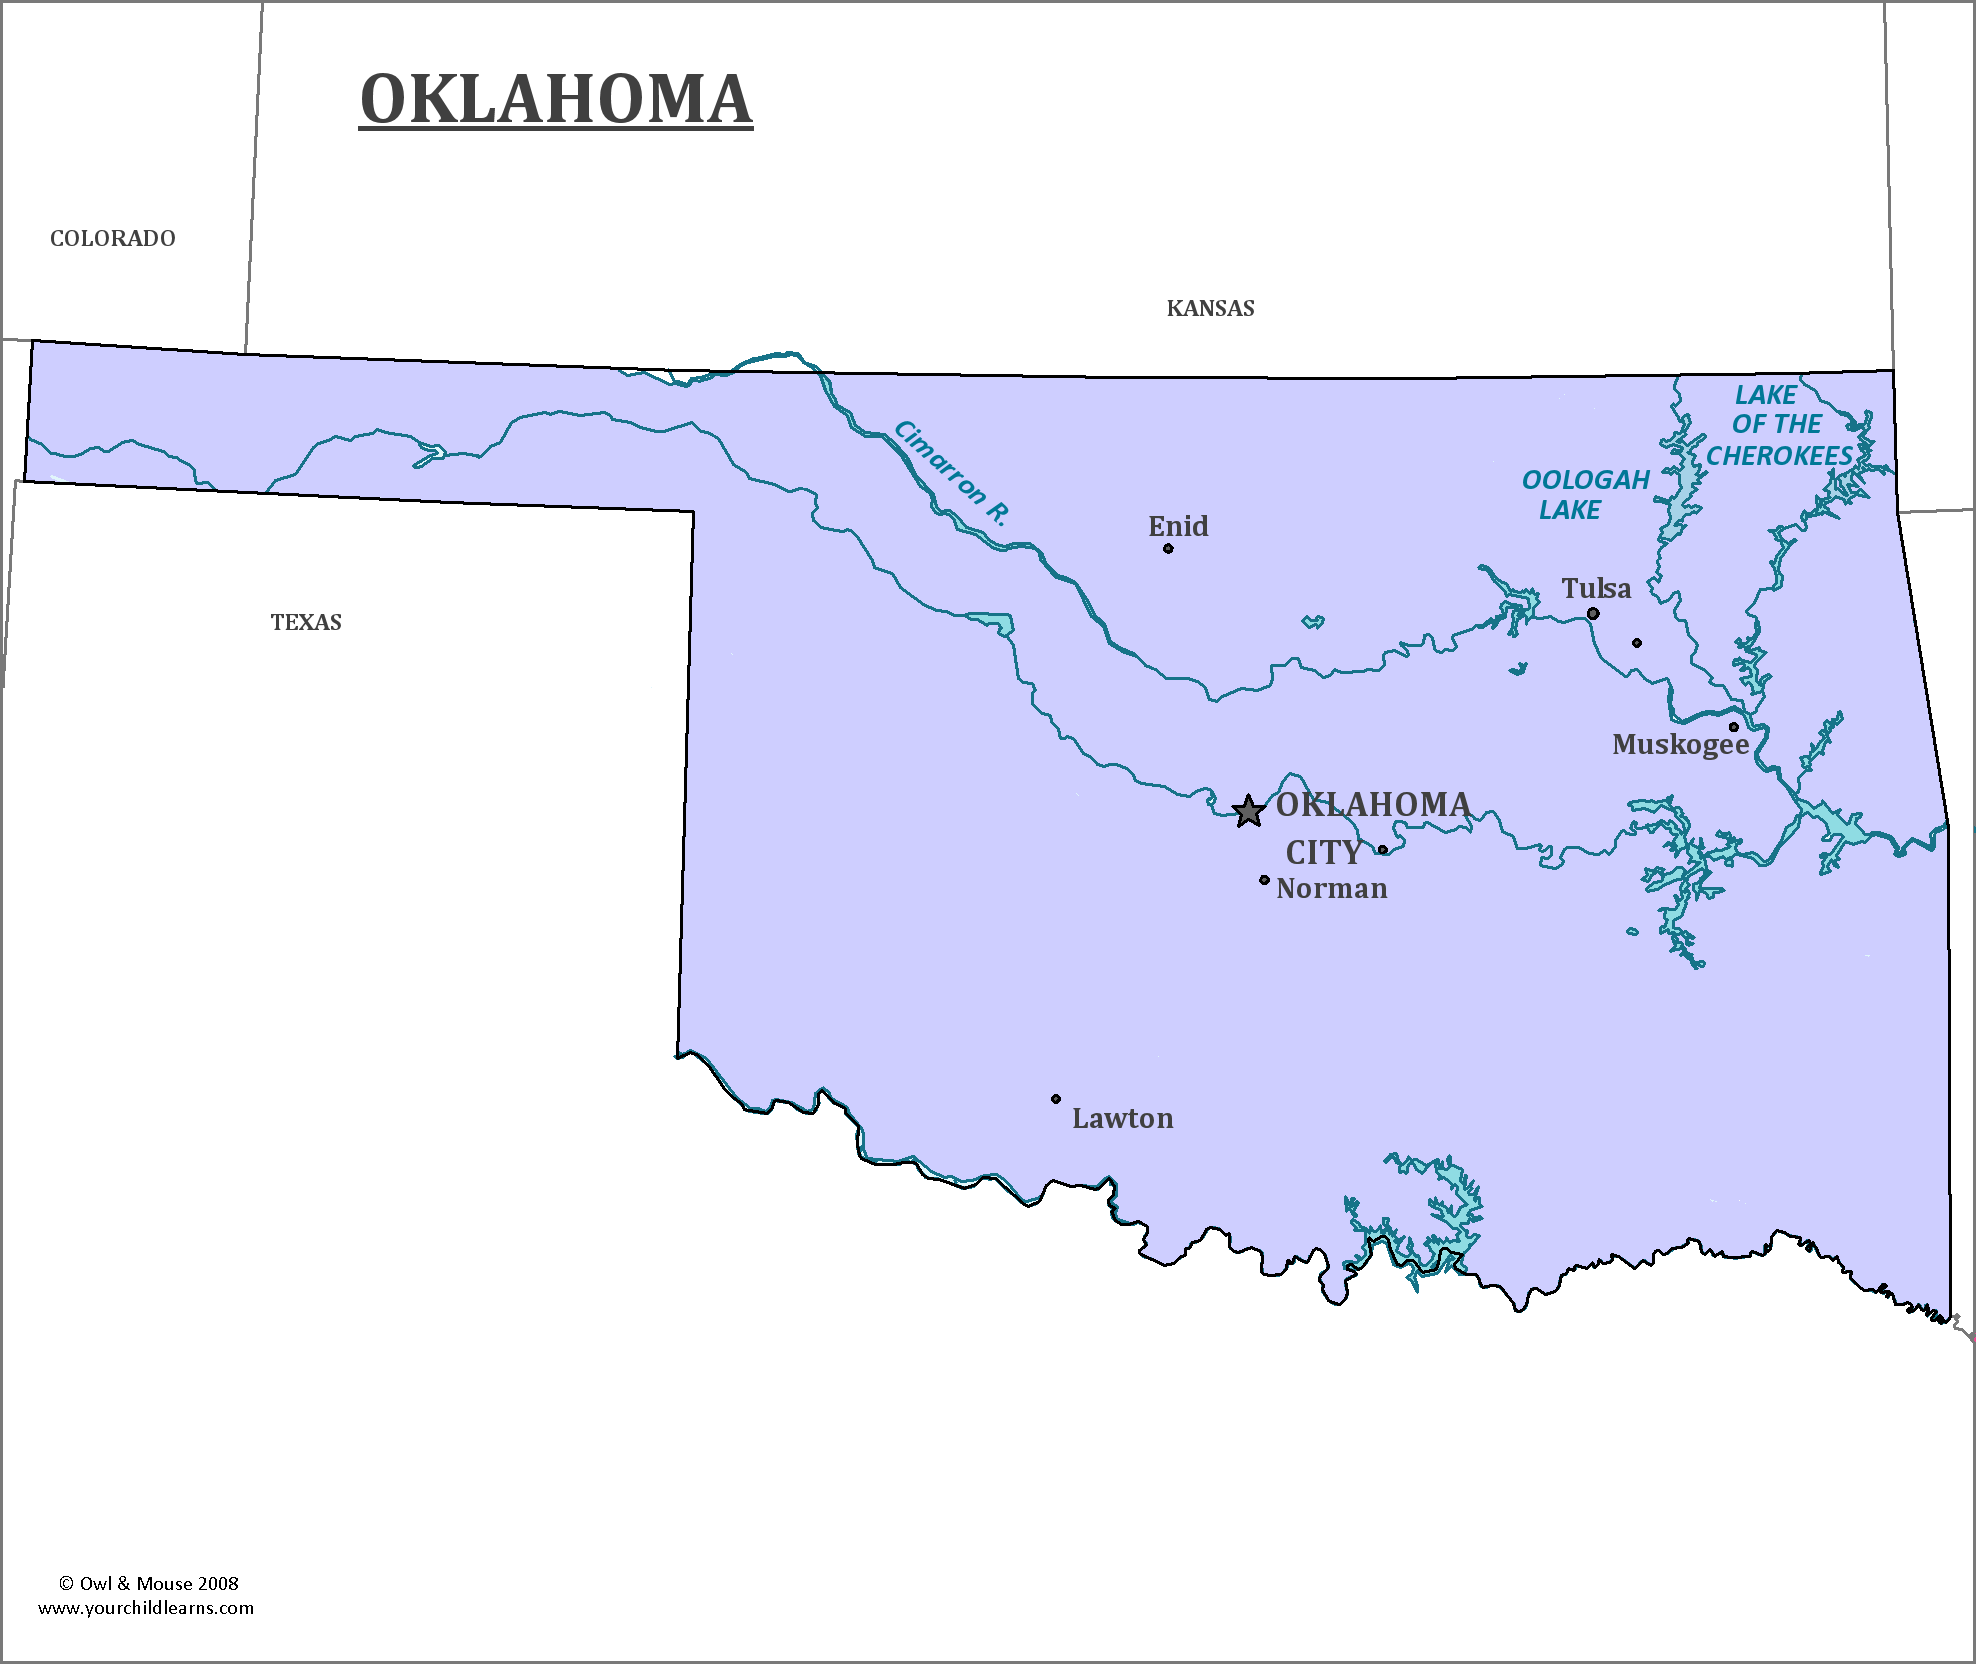 State Map Of Kansas And Oklahoma.Oklahoma State Map Map Of Oklahoma And Information About The State